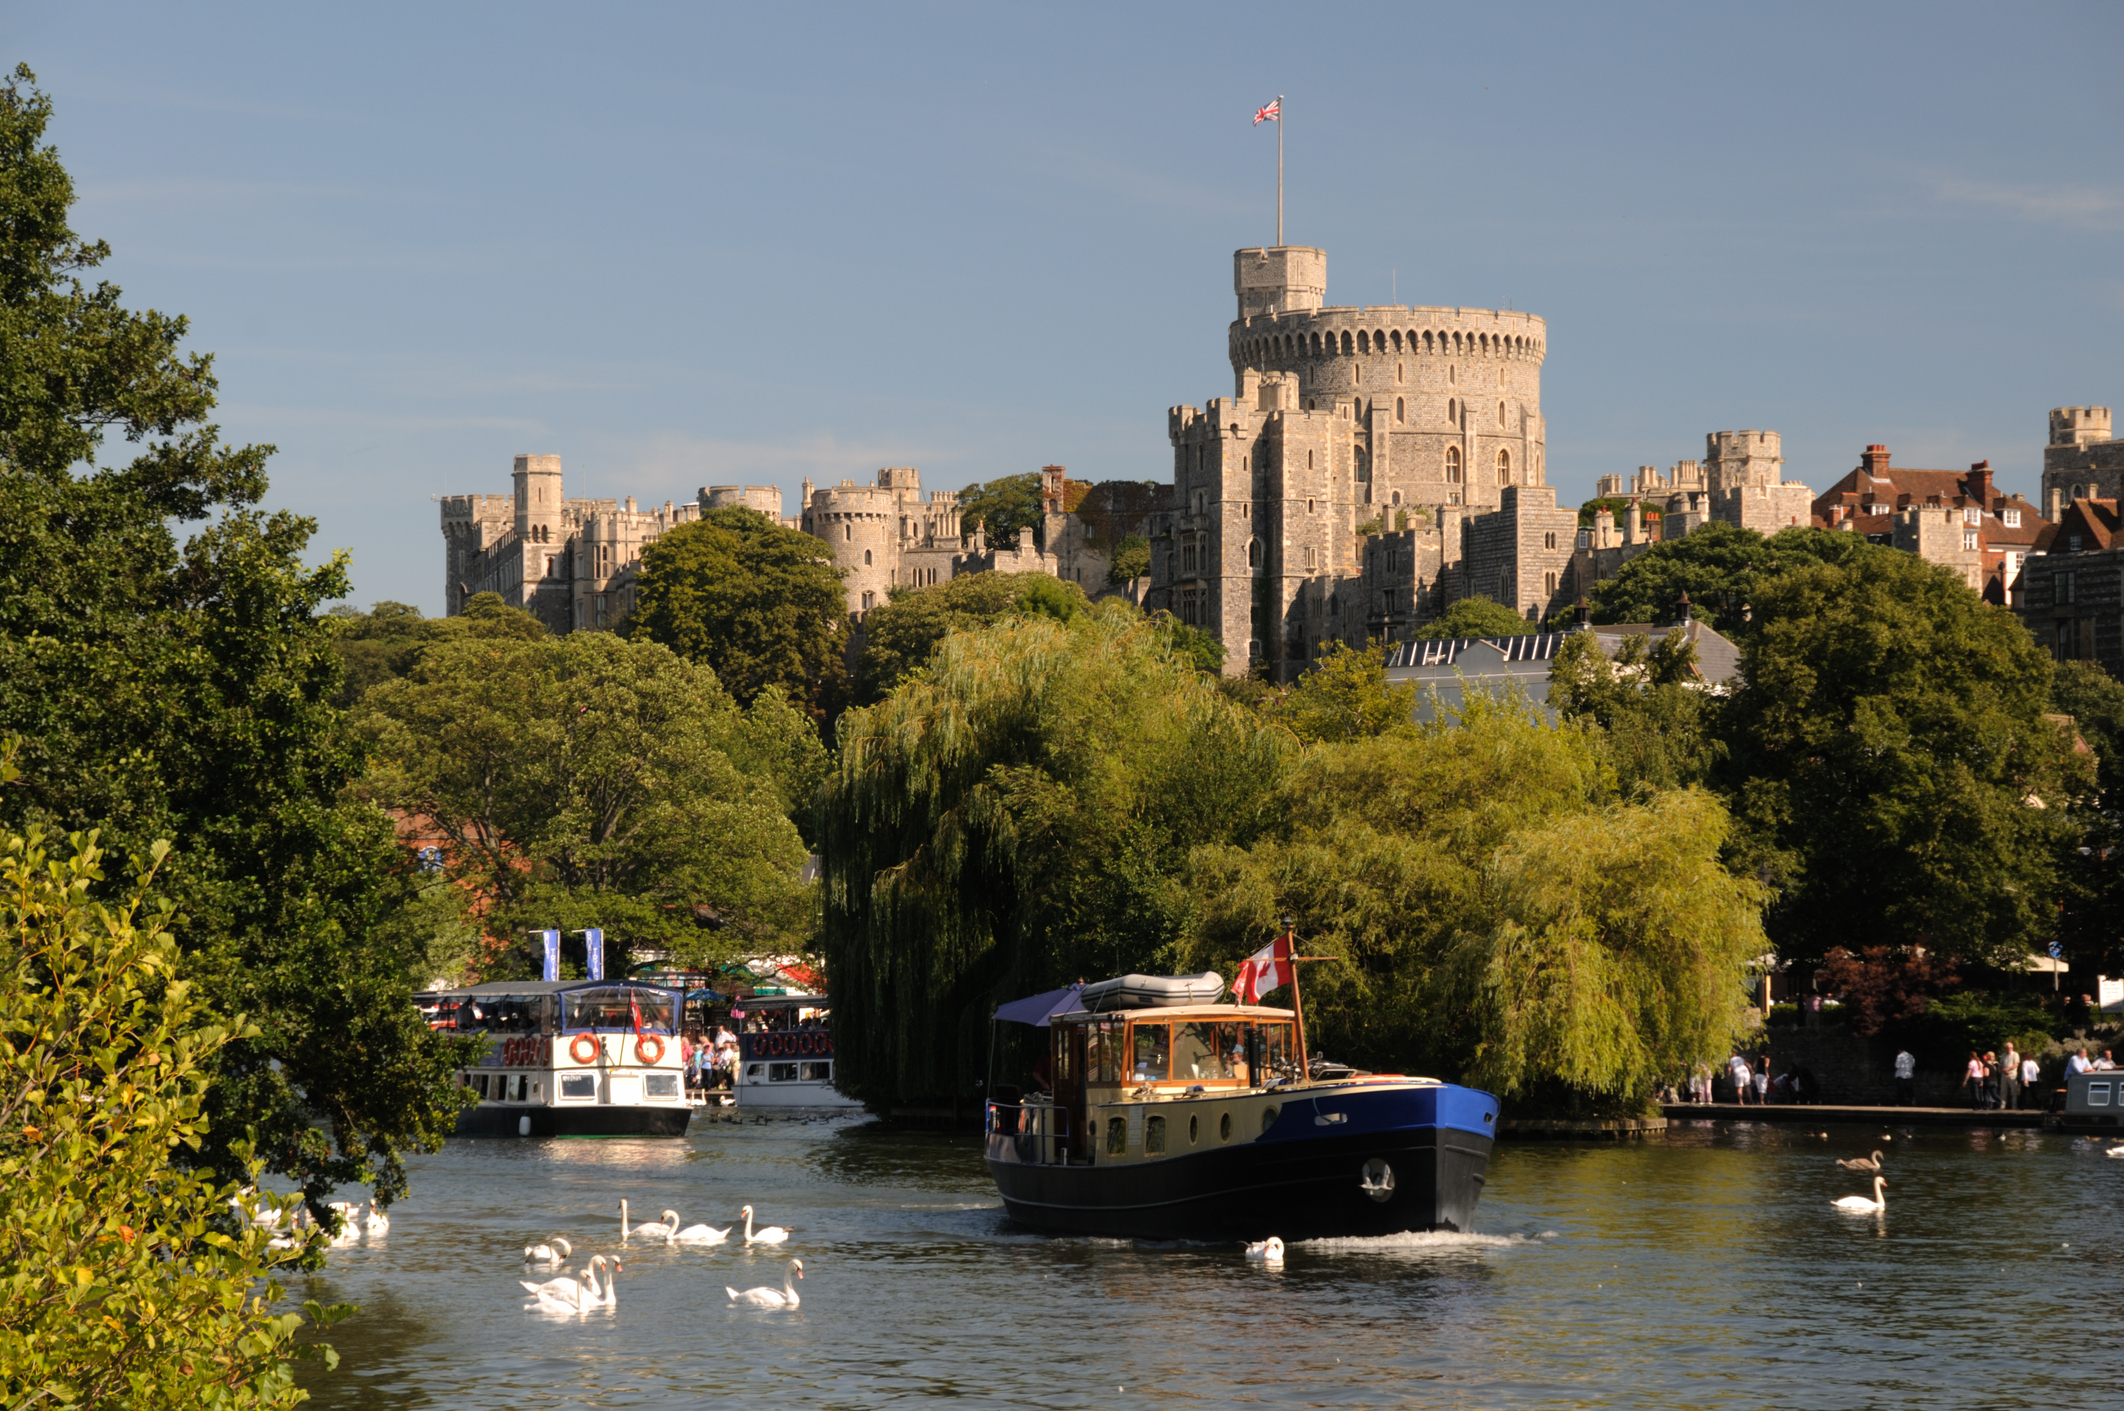 Windsor Castle: take a look at the historic building the Queen calls home